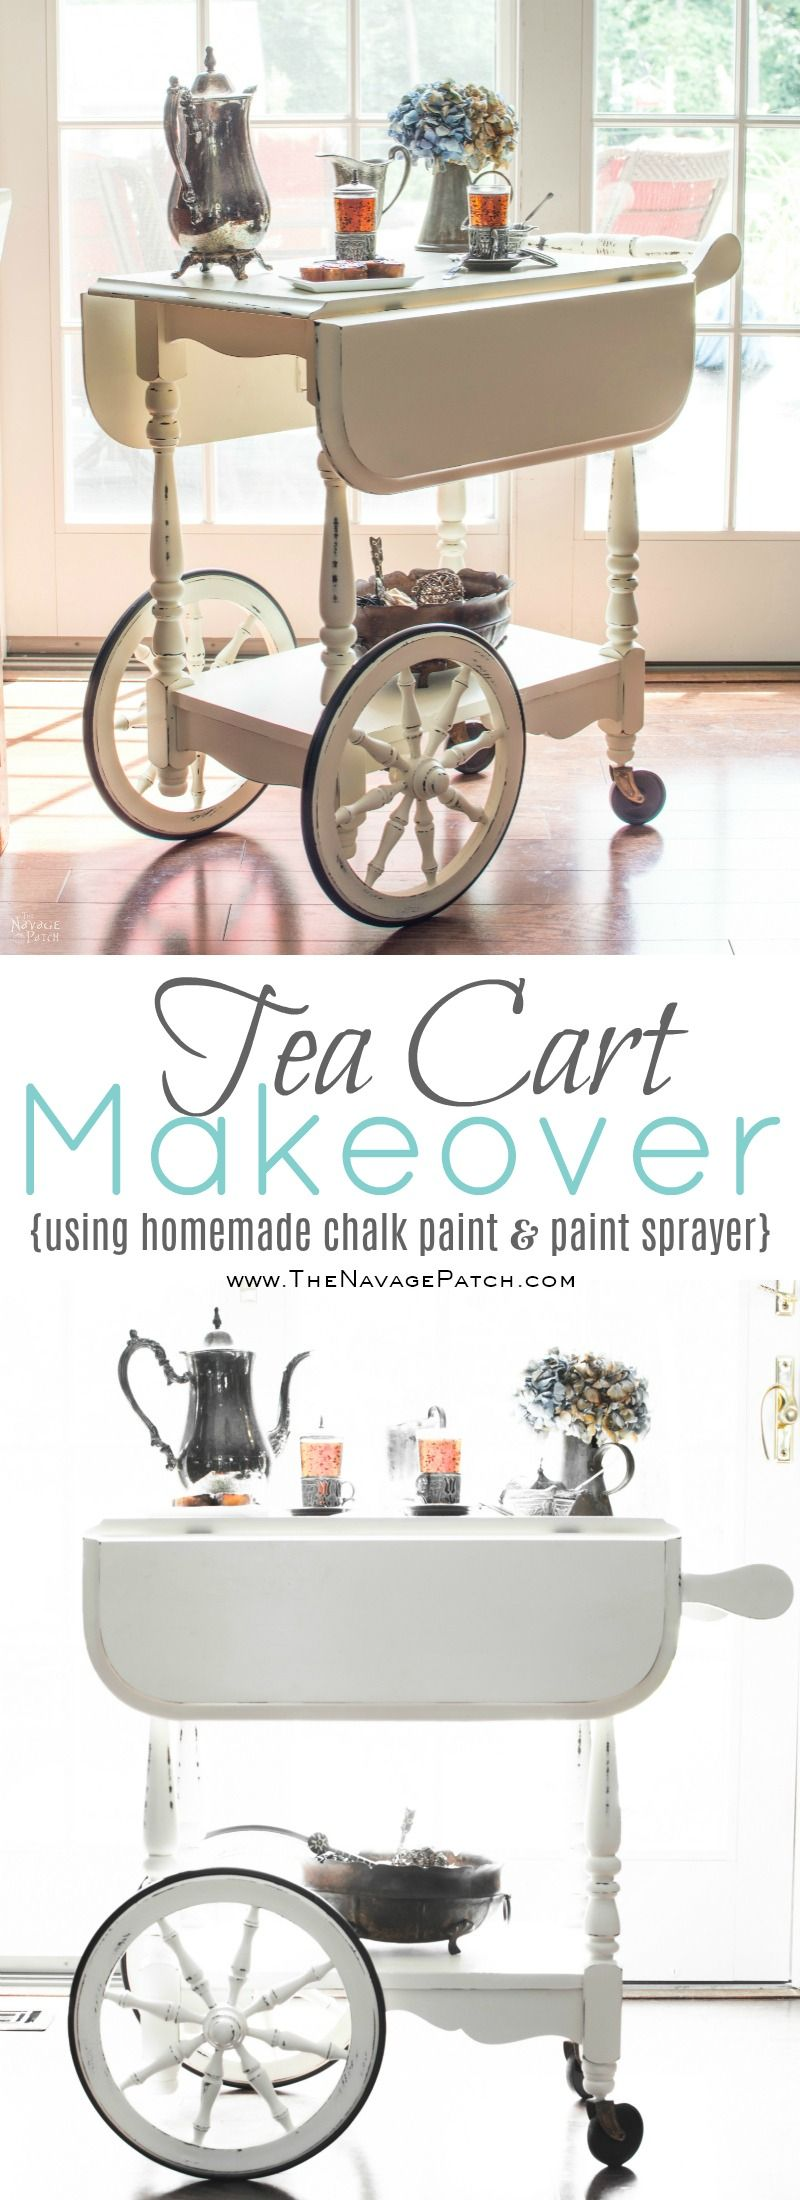 Tea Cart Makeover | DIY furniture makeover | DIY painted furniture with homemade chalk paint | DIY chalk paint | French country decorating | Farmhouse style furniture | Annie Sloan Old White color | How to use homemade chalk paint with paint sprayer | DIY chalk paint recipe | Wagner paint sprayer | Before & After | TheNavagePatch.com